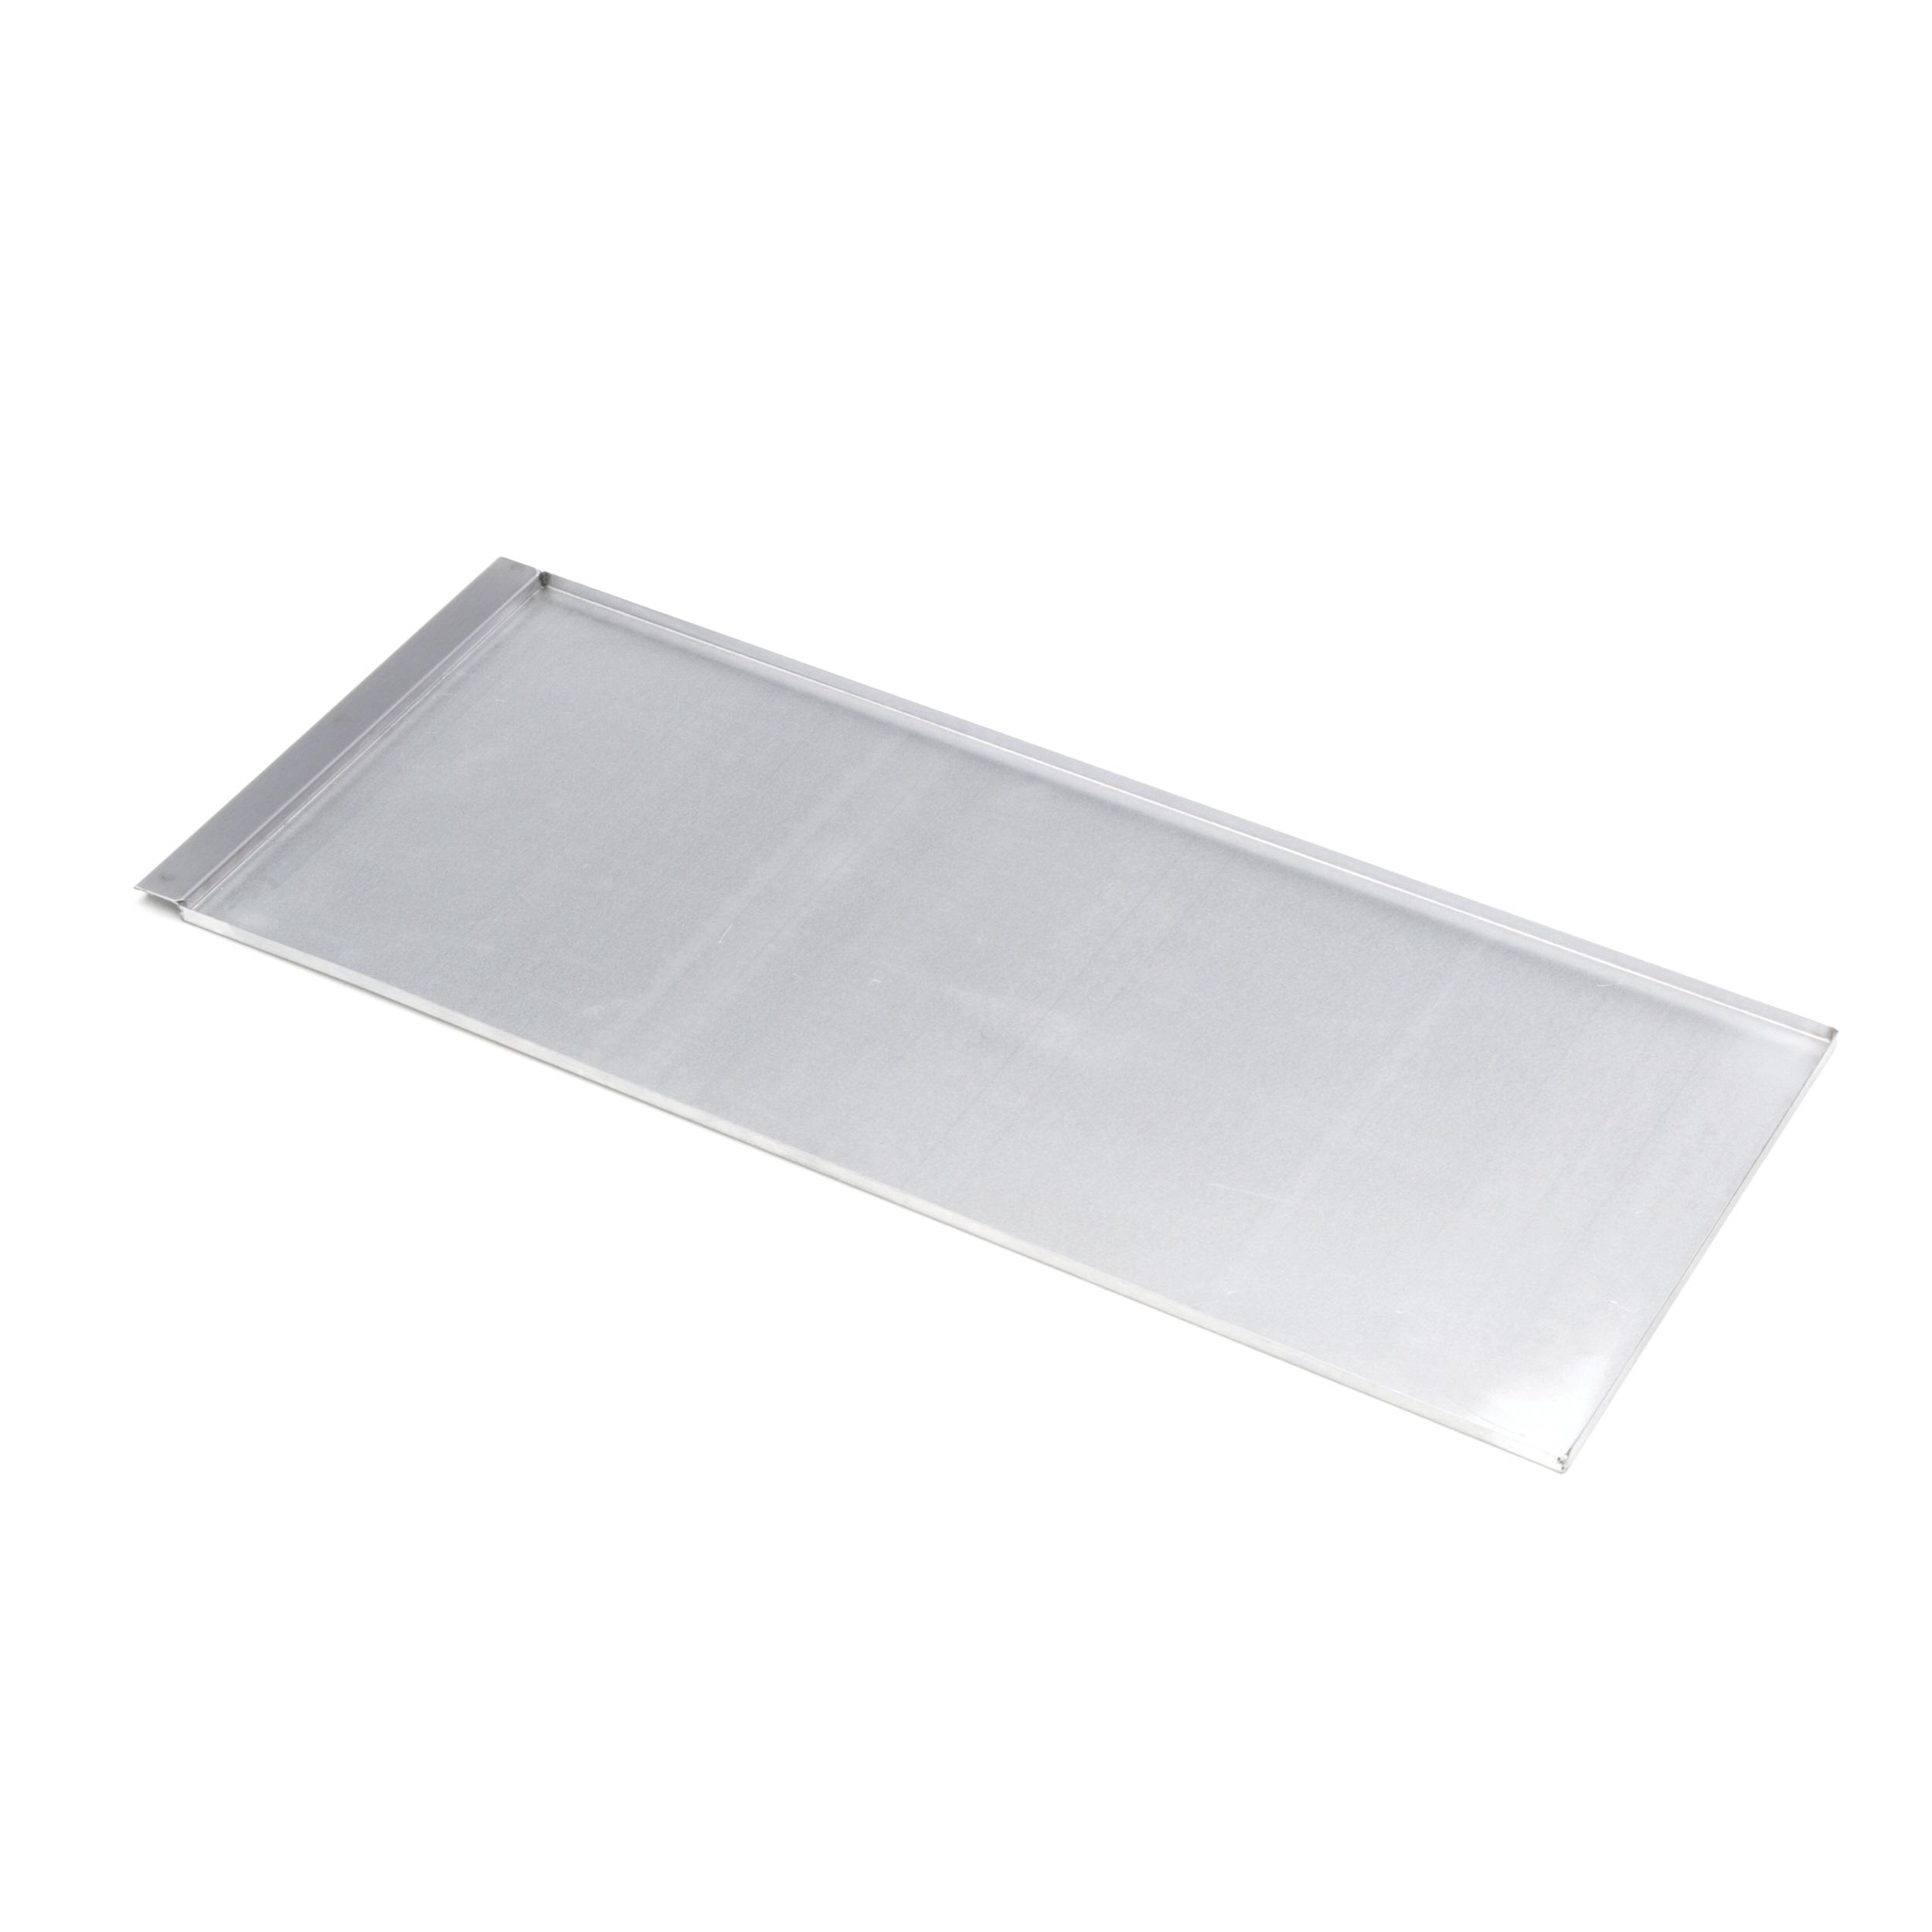 MONTAGUE DRIP TRAY-13 X 31 1/4